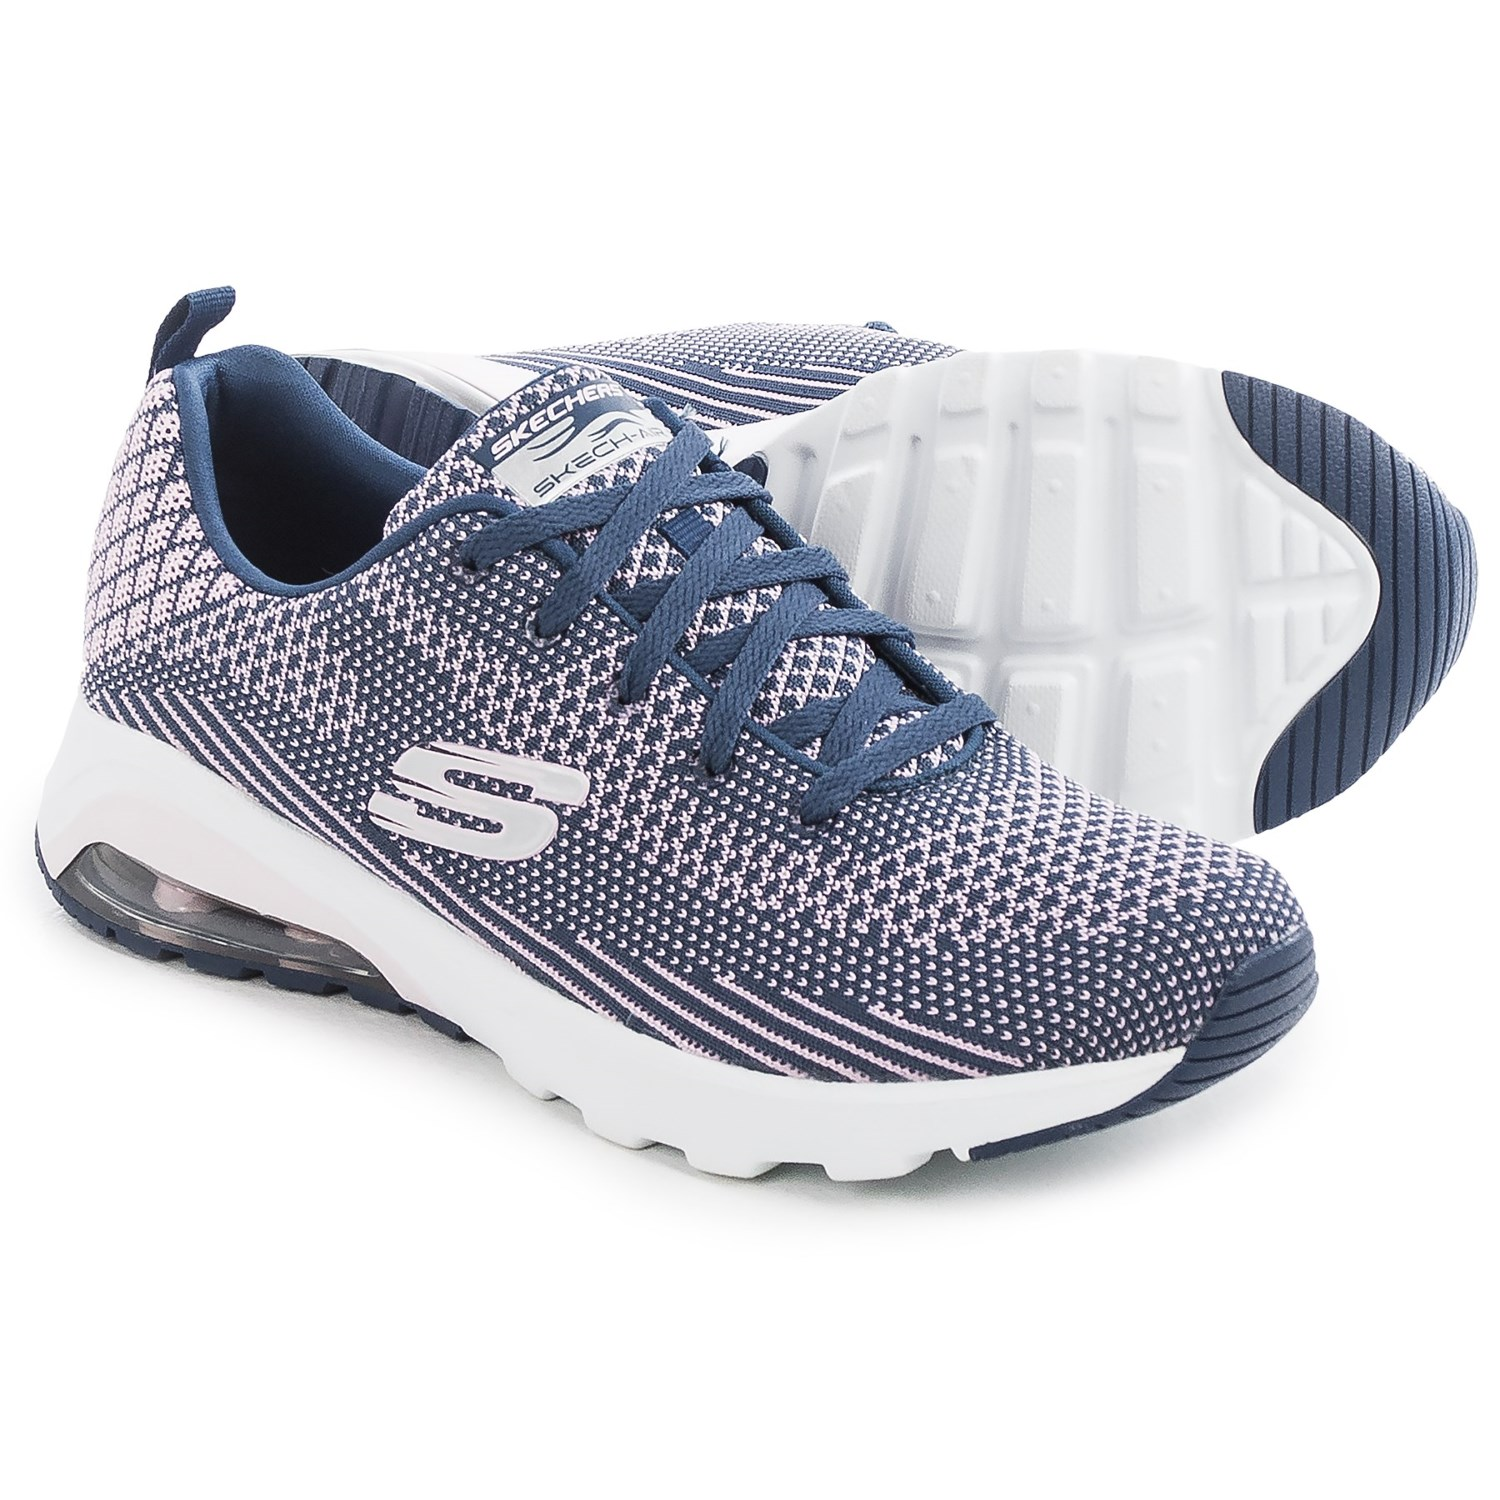 Shop adalatblog.ml for Skechers golf shoes in spiked and spikeless models. Get the style, traction, and comfort you need for golf with styles for men and women.